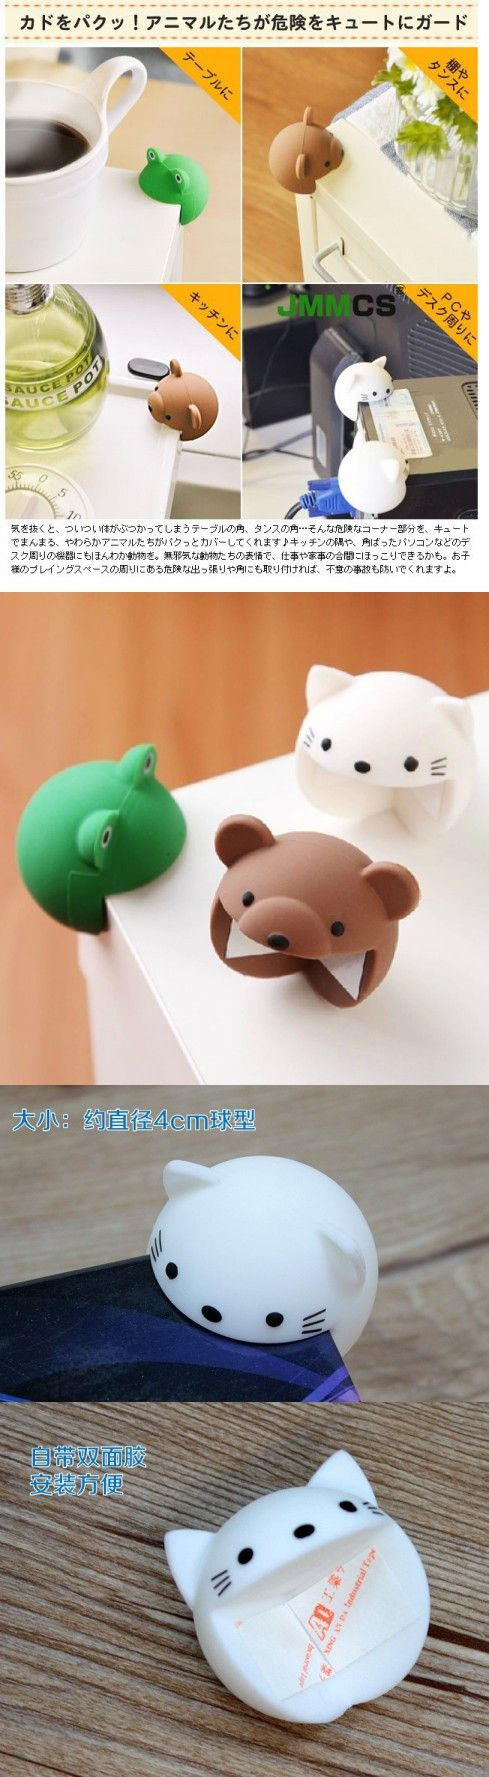 2pcs/pack baby safety corner Cute Silicone Baby Safety Protector Desk Table Corner Edge Protection Cover